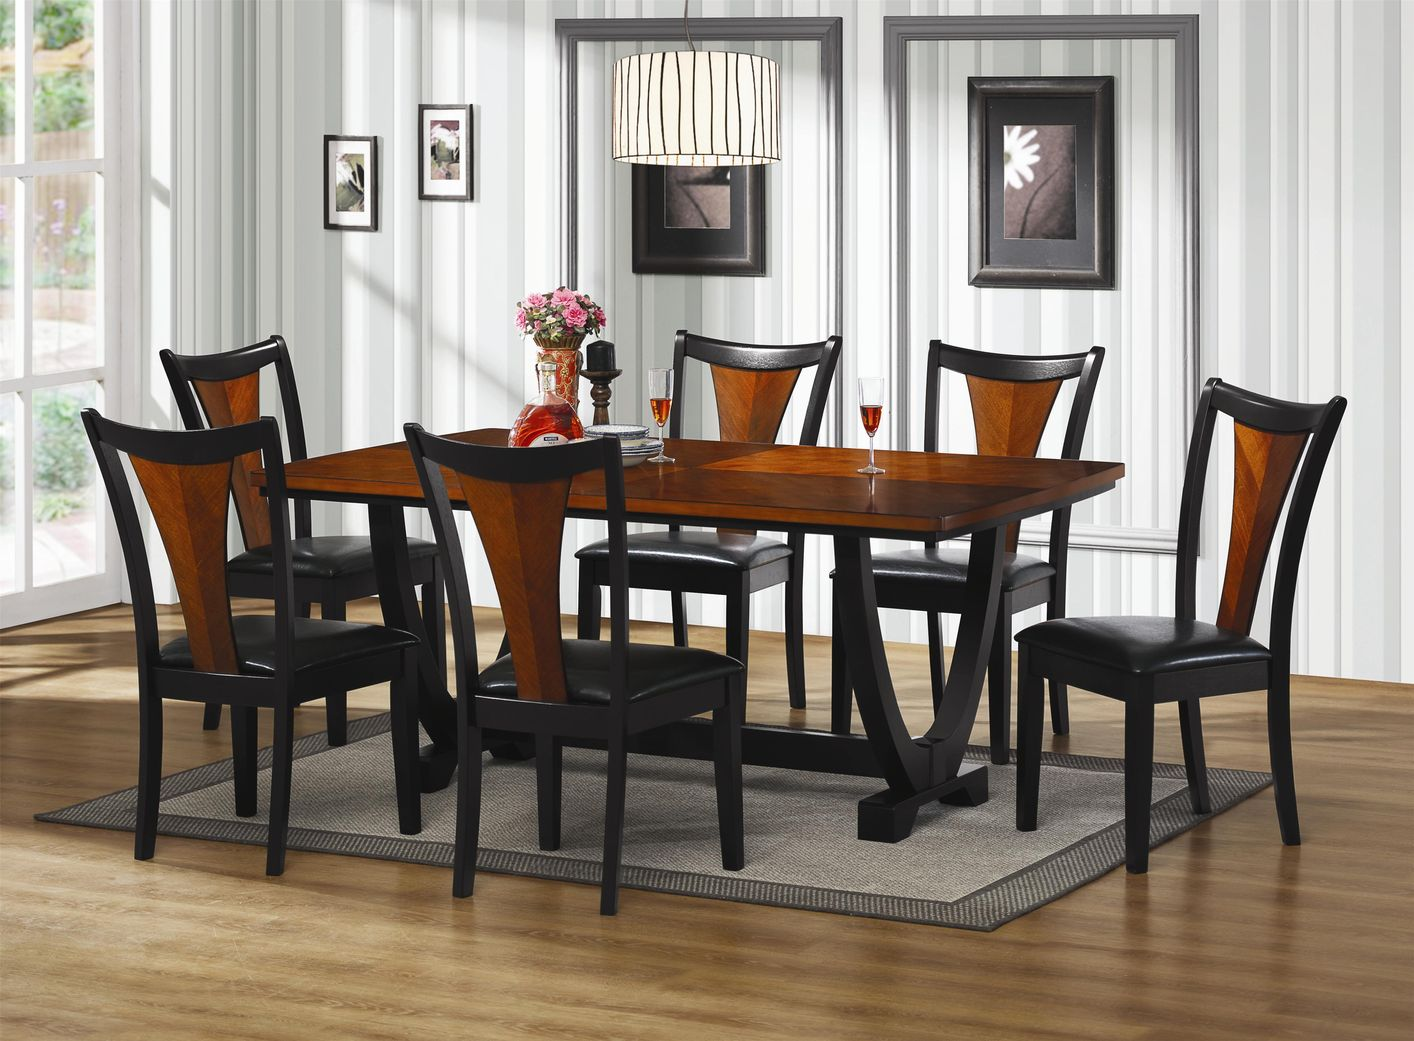 Solid Cherry Dining Room Table Cherry Wood Dining Room Furniture Wood Floor Water Damage